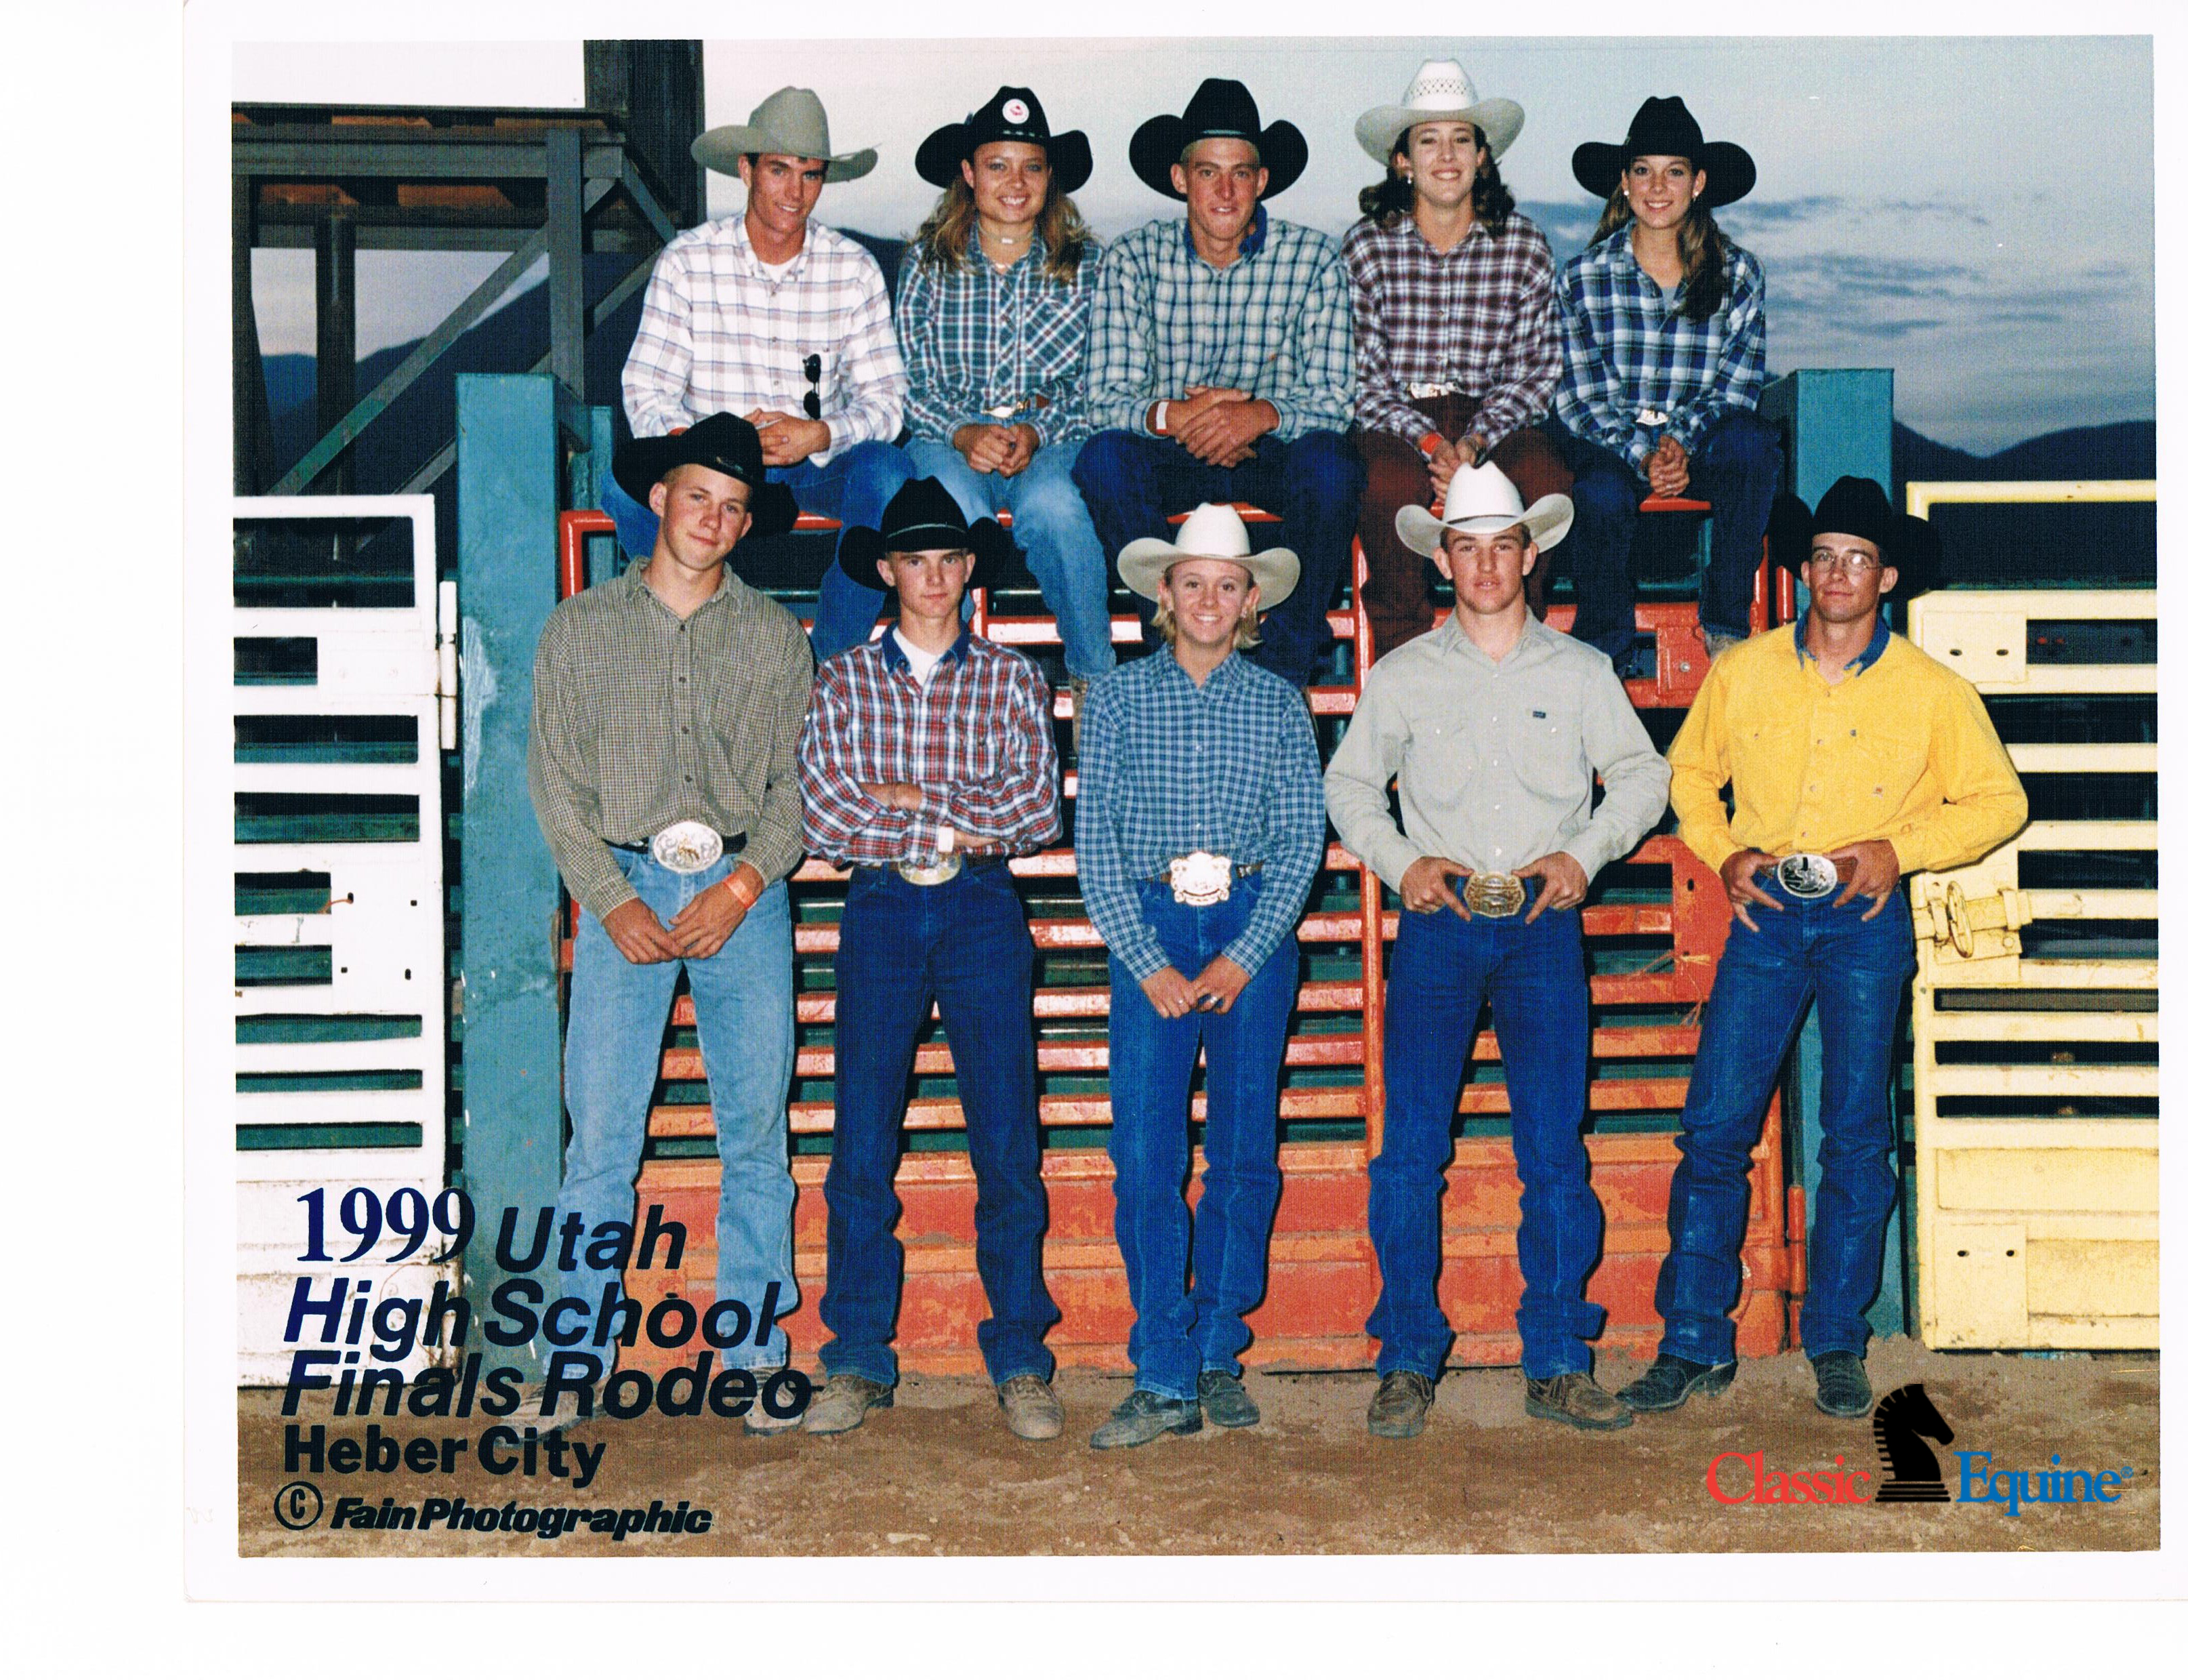 1999 Kassie High School Finals Heber City UT_logo